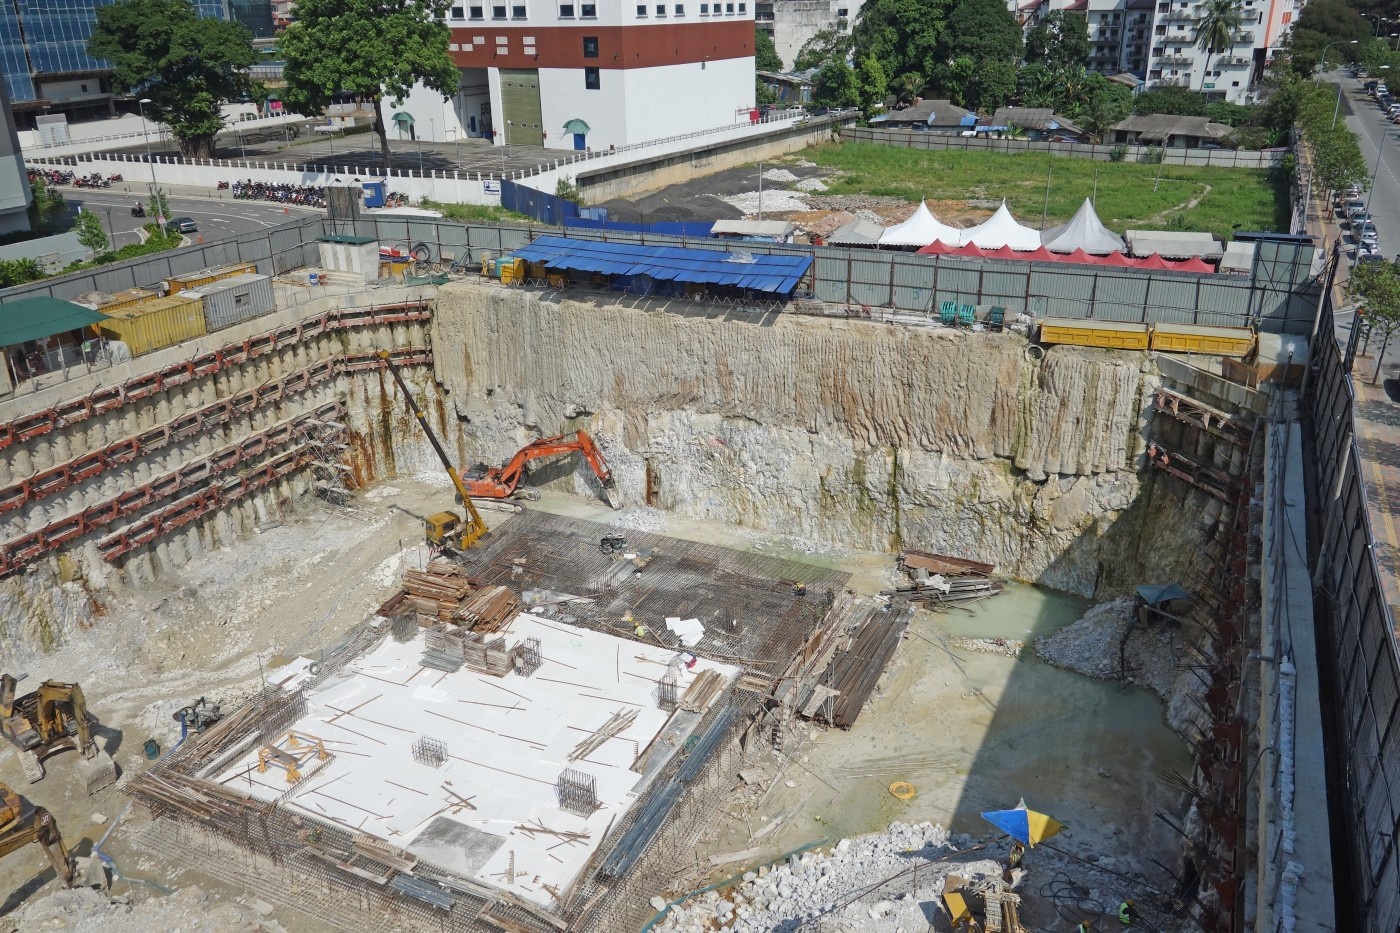 Basement excavation support in downtown Kuala Lumpur using soil mixing